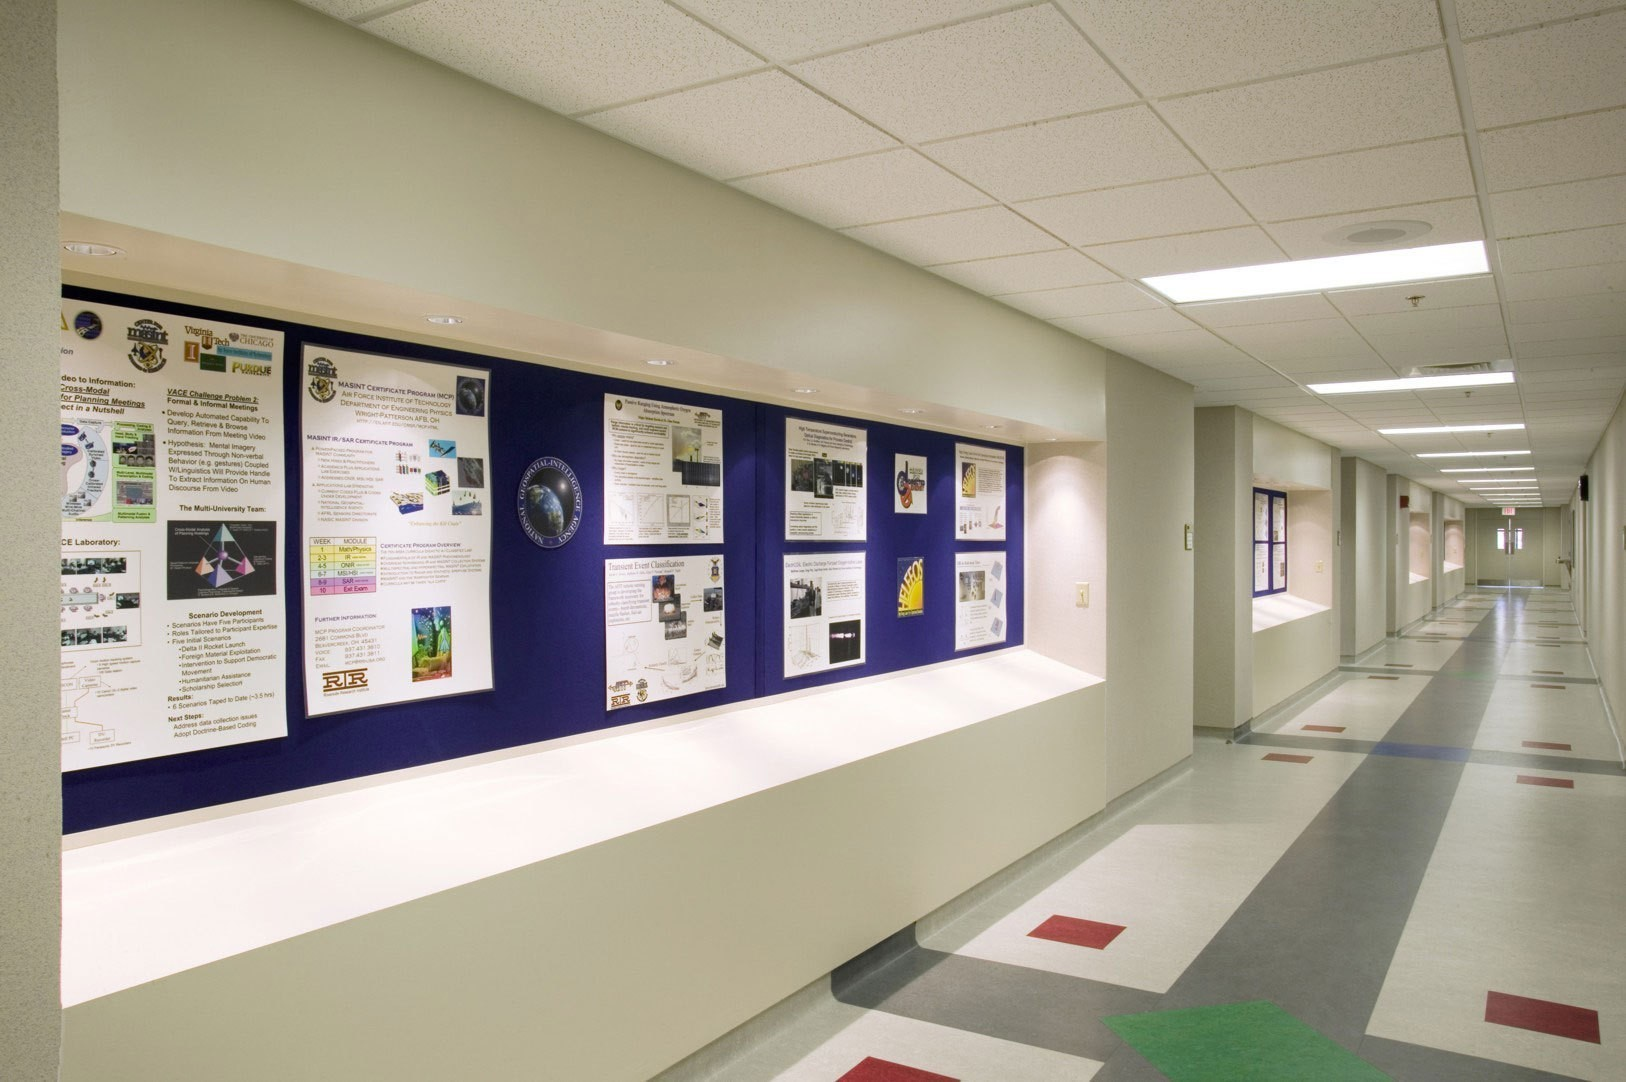 wright-patterson-airforce-base-technology-graduate-school-engineering-management-hallway